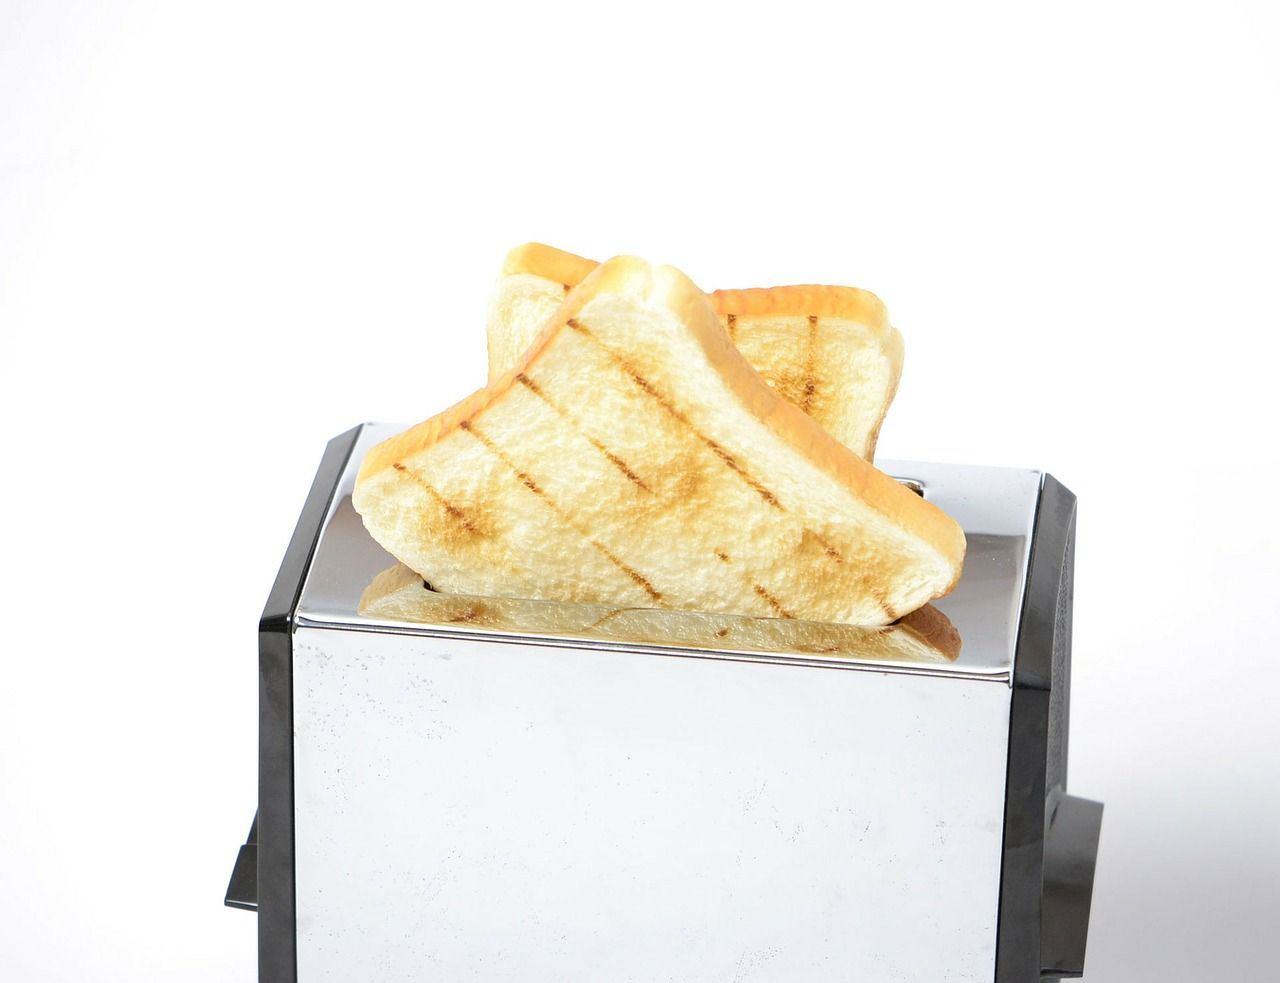 How to clean the inside of a toaster